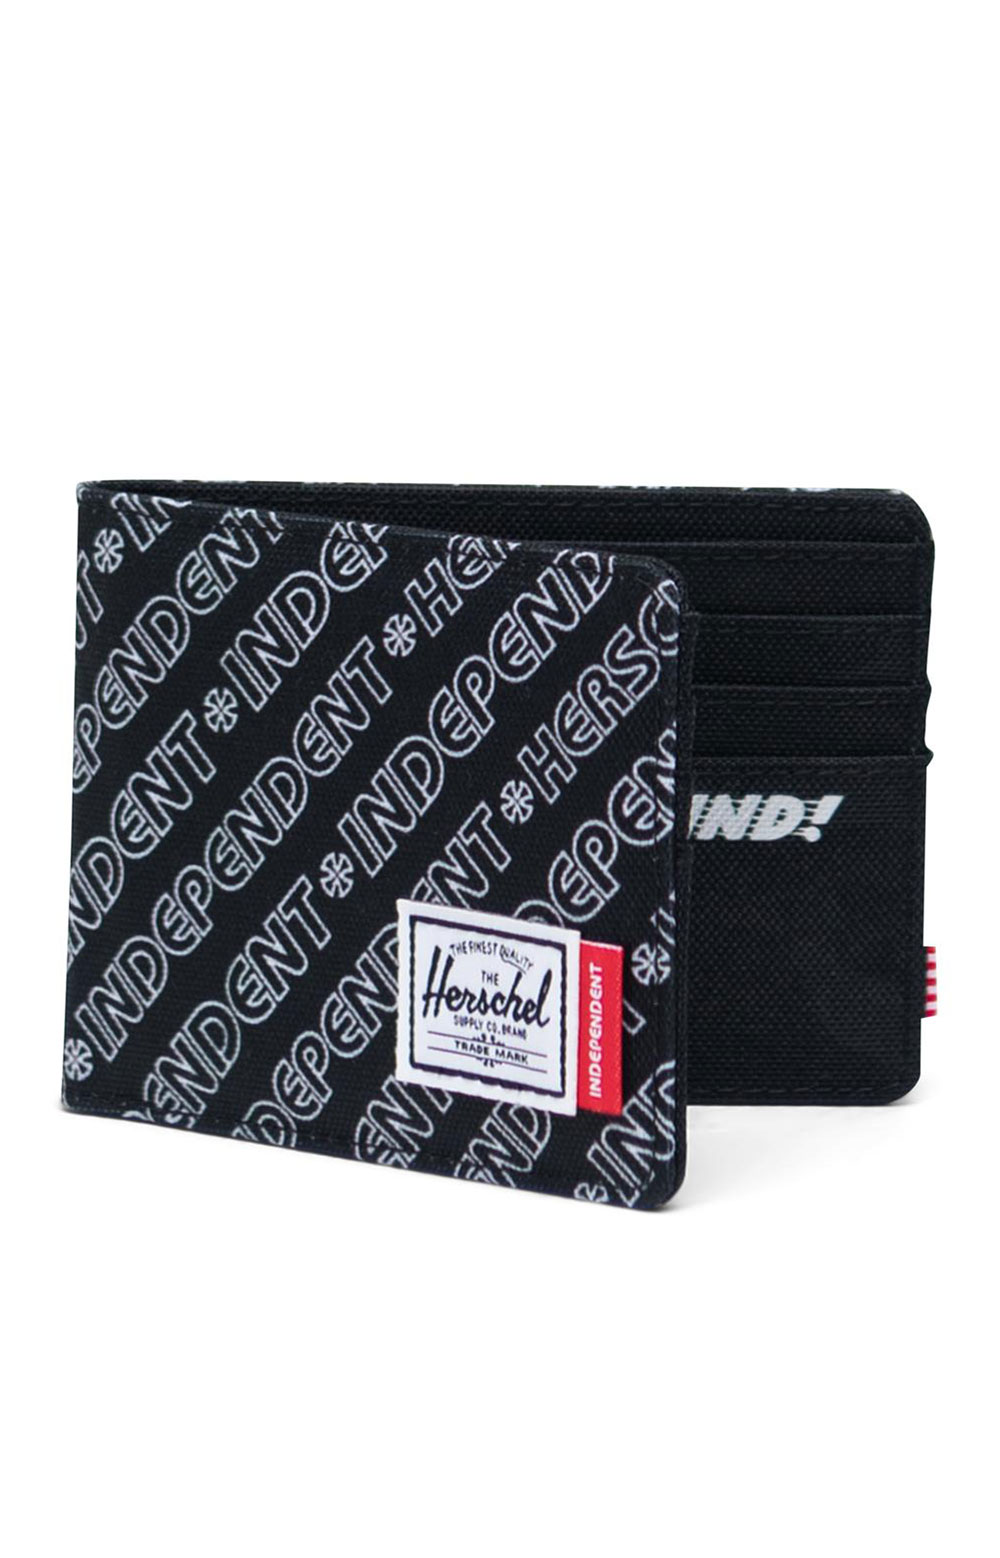 Roy Wallet - Independent Unified Black  2